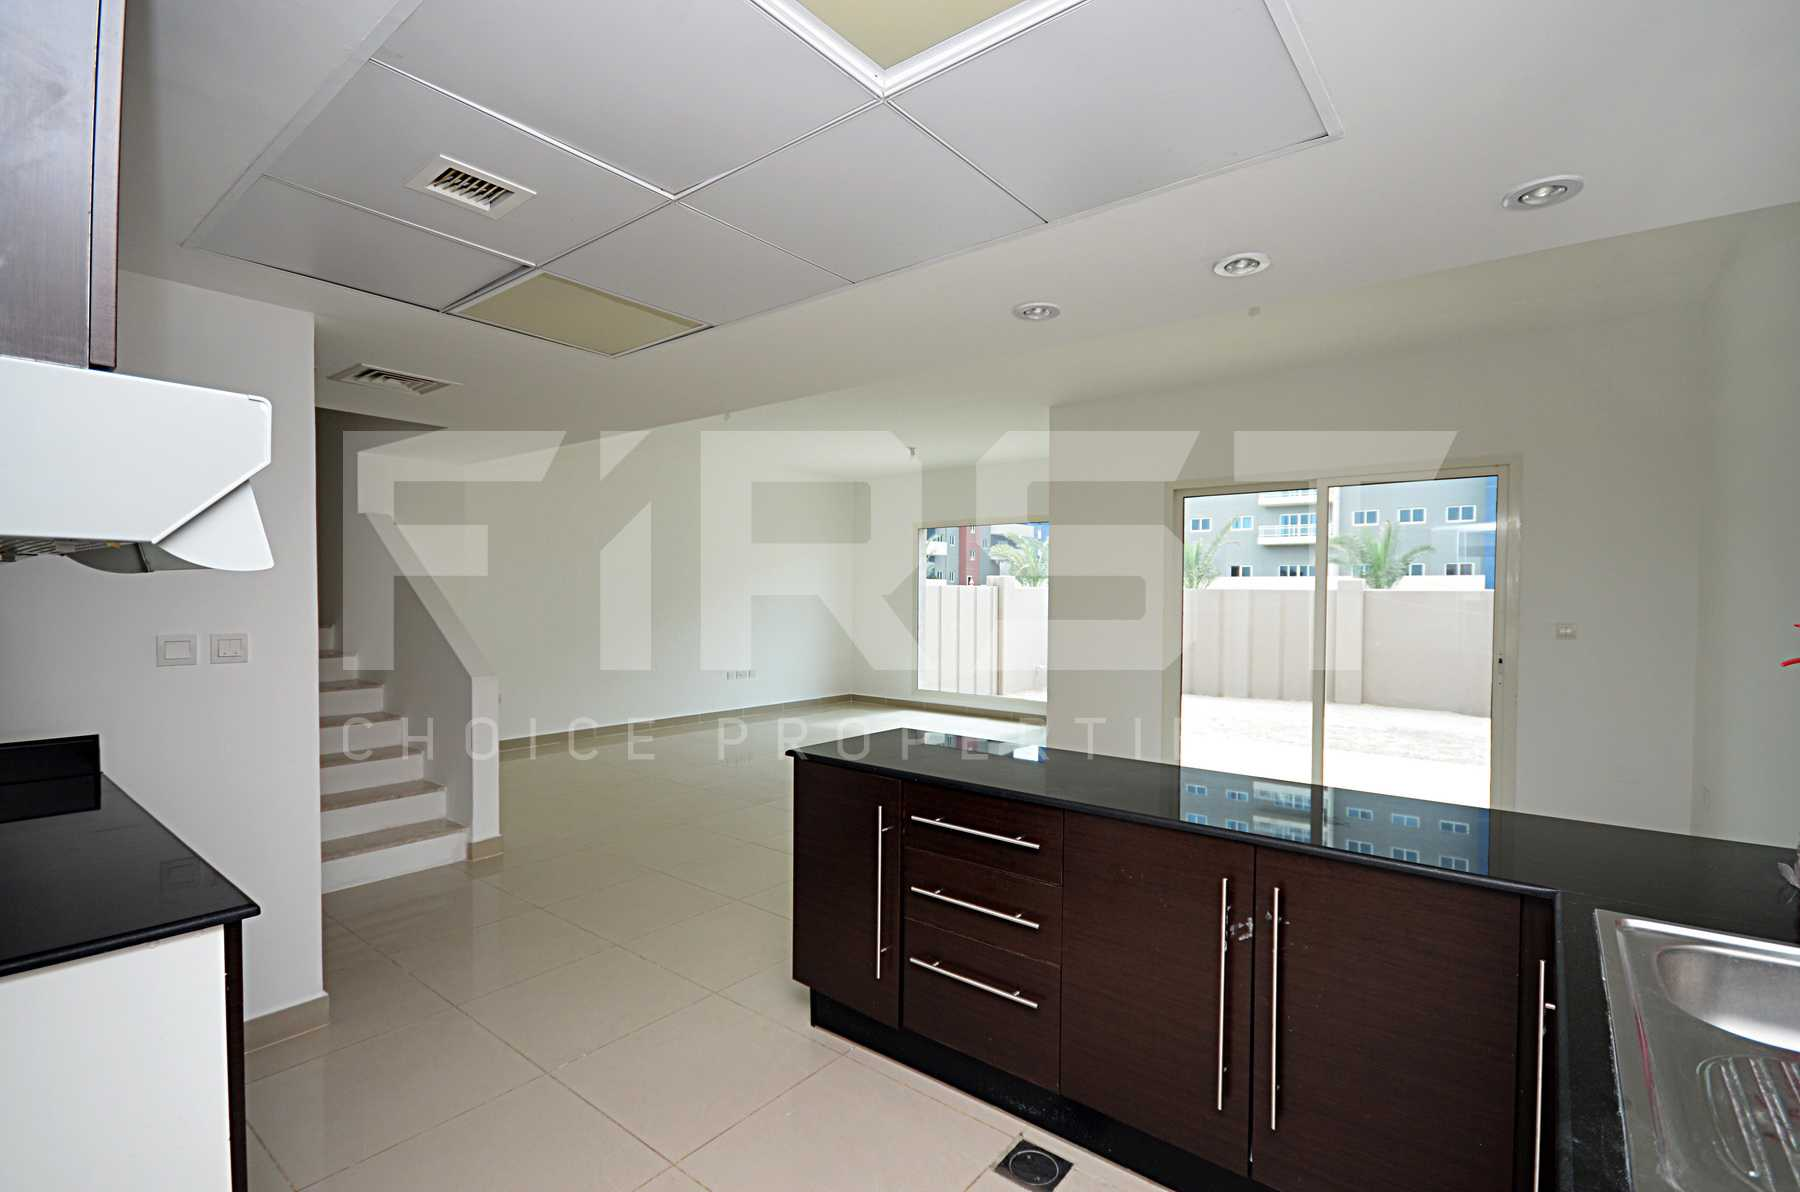 8. Internal Photo of 4 Bedroom Villa in Al Reef Villas Al Reef Abu Dhabi UAE 265.5 sq.m 2858 sq.ft (46).jpg